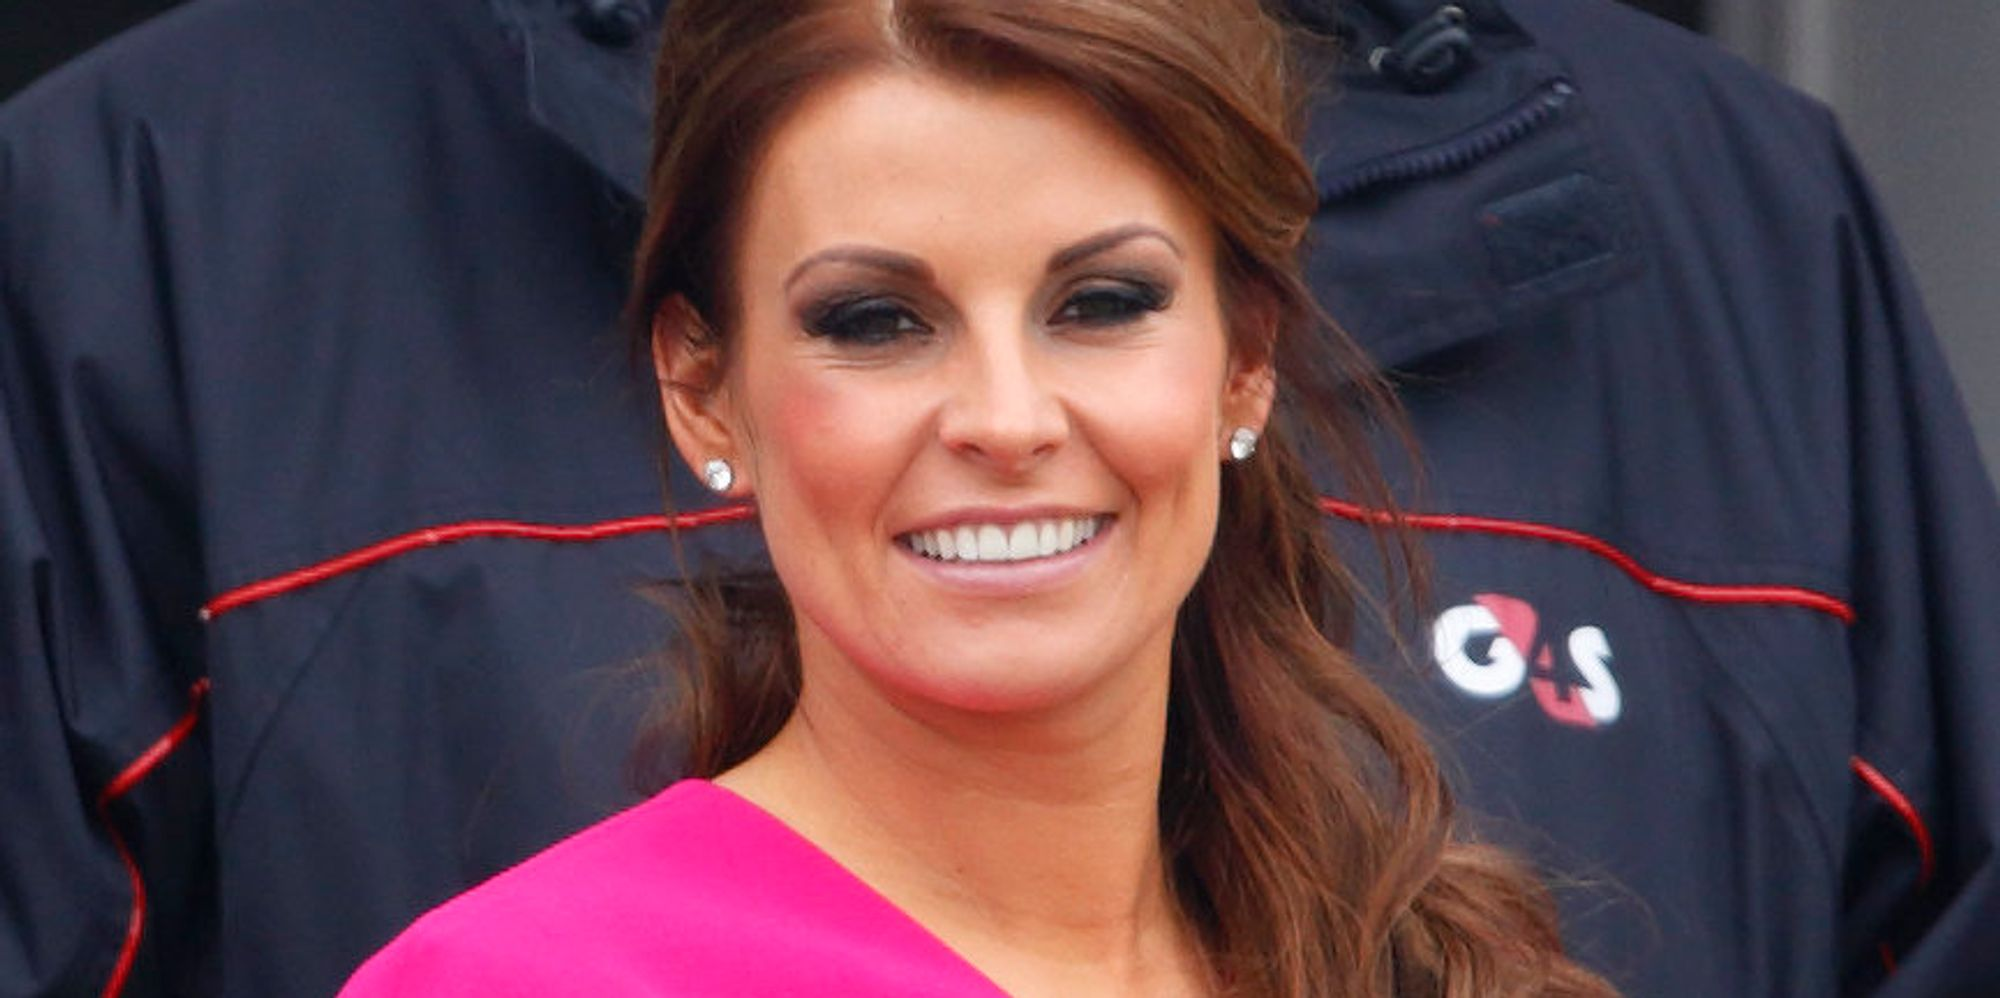 'I'm A Celebrity' 2016: Coleen Rooney Offered 'Mega Deal' To Appear In The Jungle